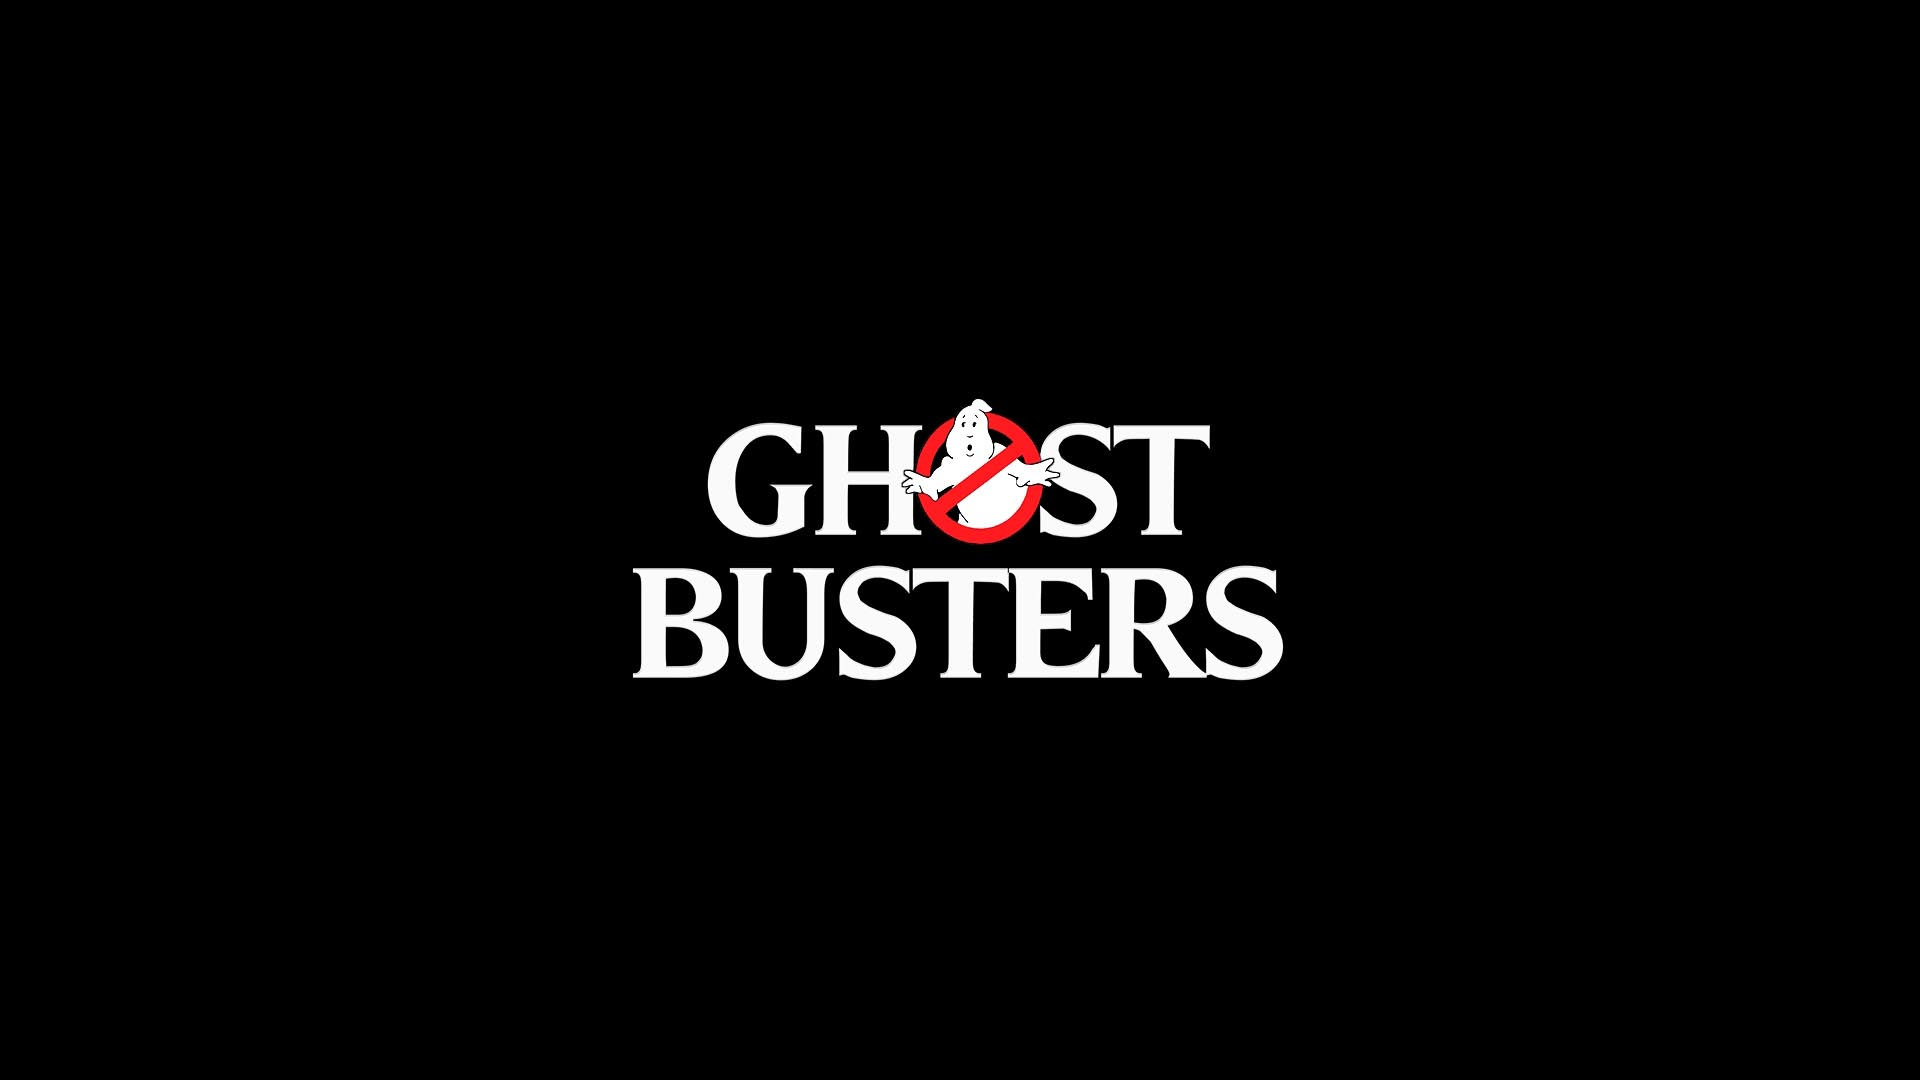 ghostbusters full hd wallpaper and background image | 1920x1080 | id